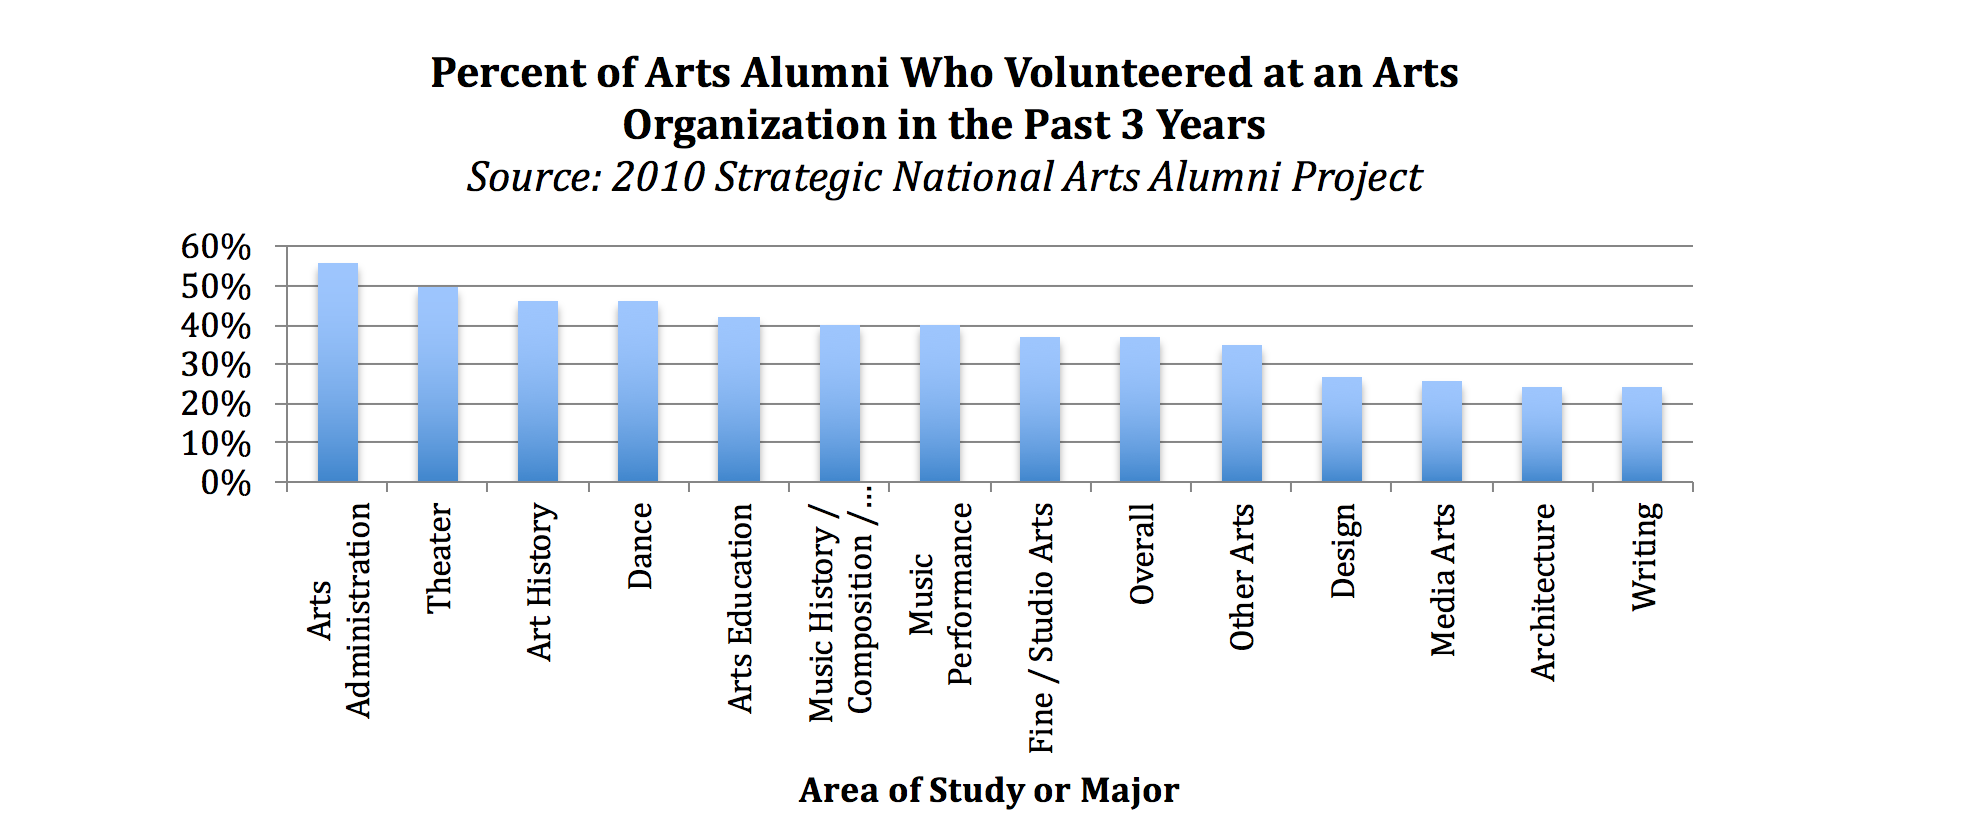 Figure 4: Percentage of Arts Alumni Who Volunteered at an Arts Organization in the Past 3 Years